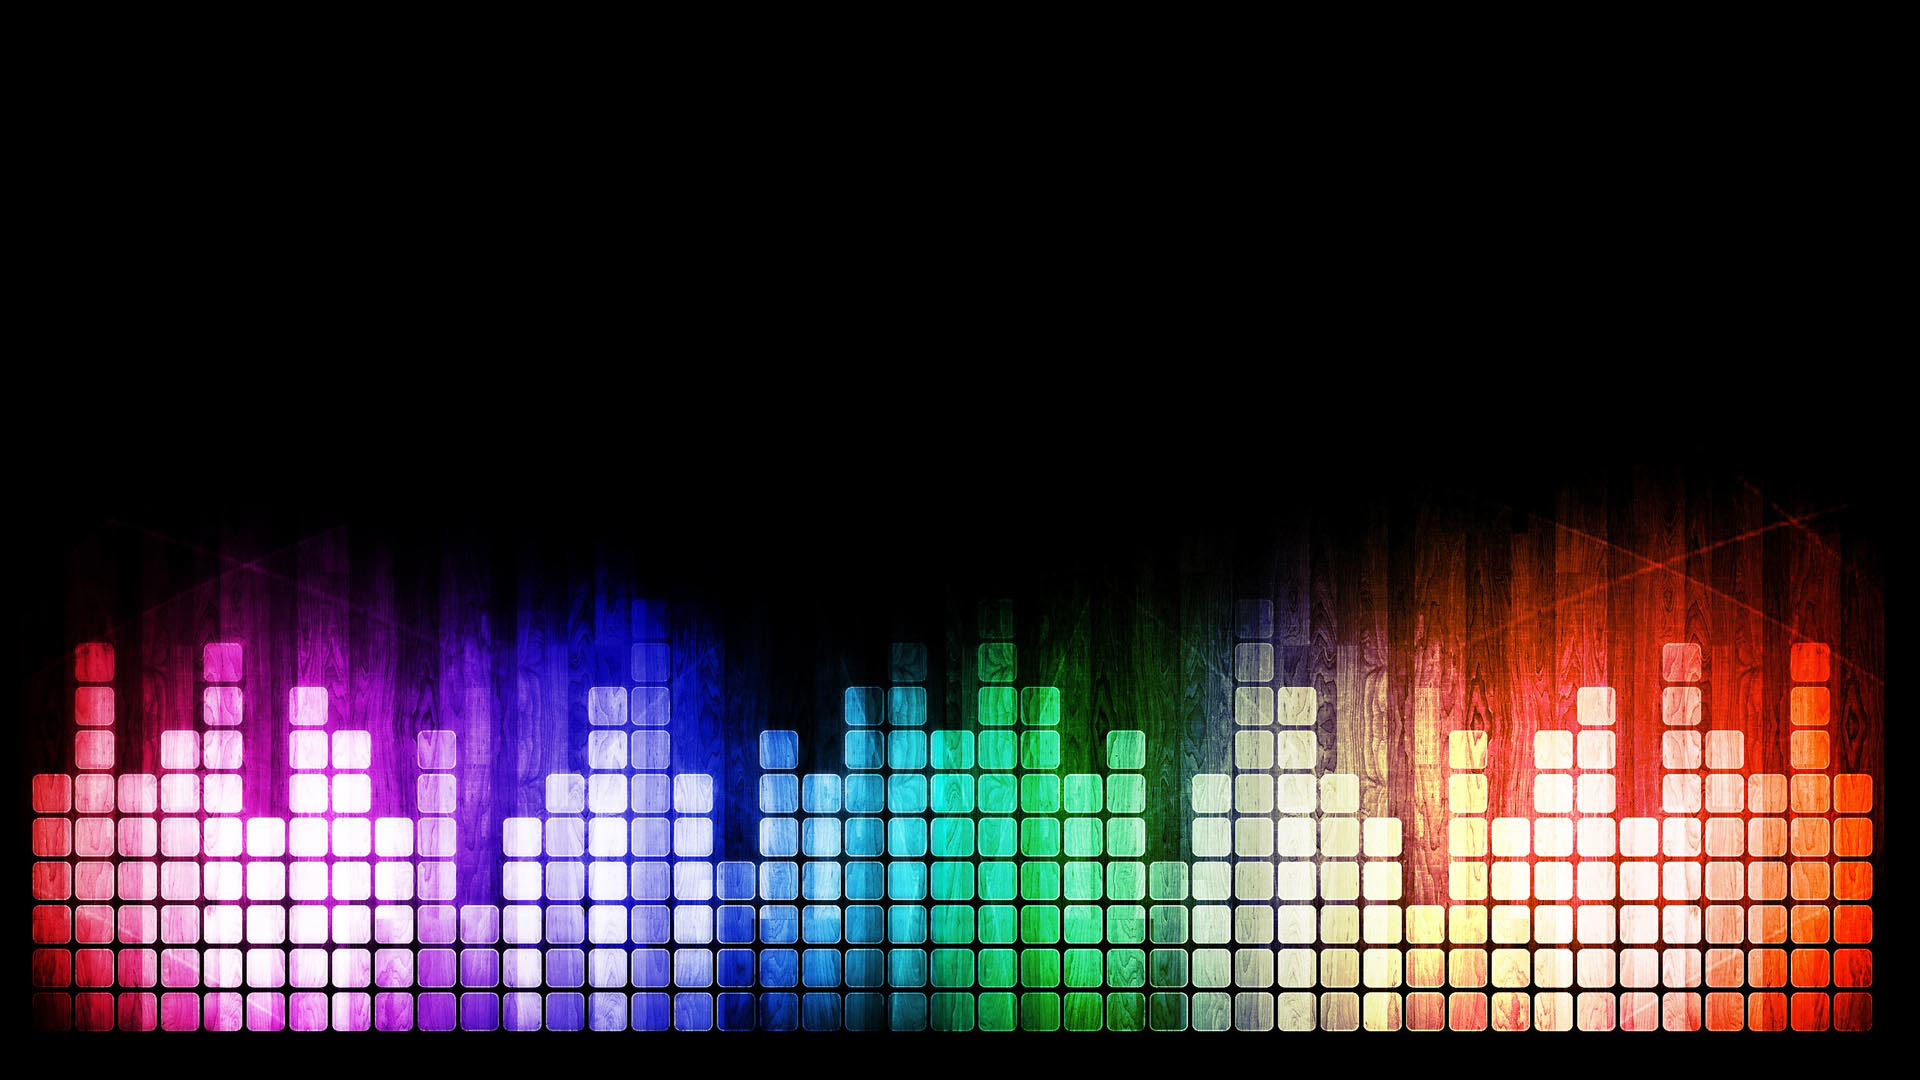 music hd wallpapers 1080p 83 images